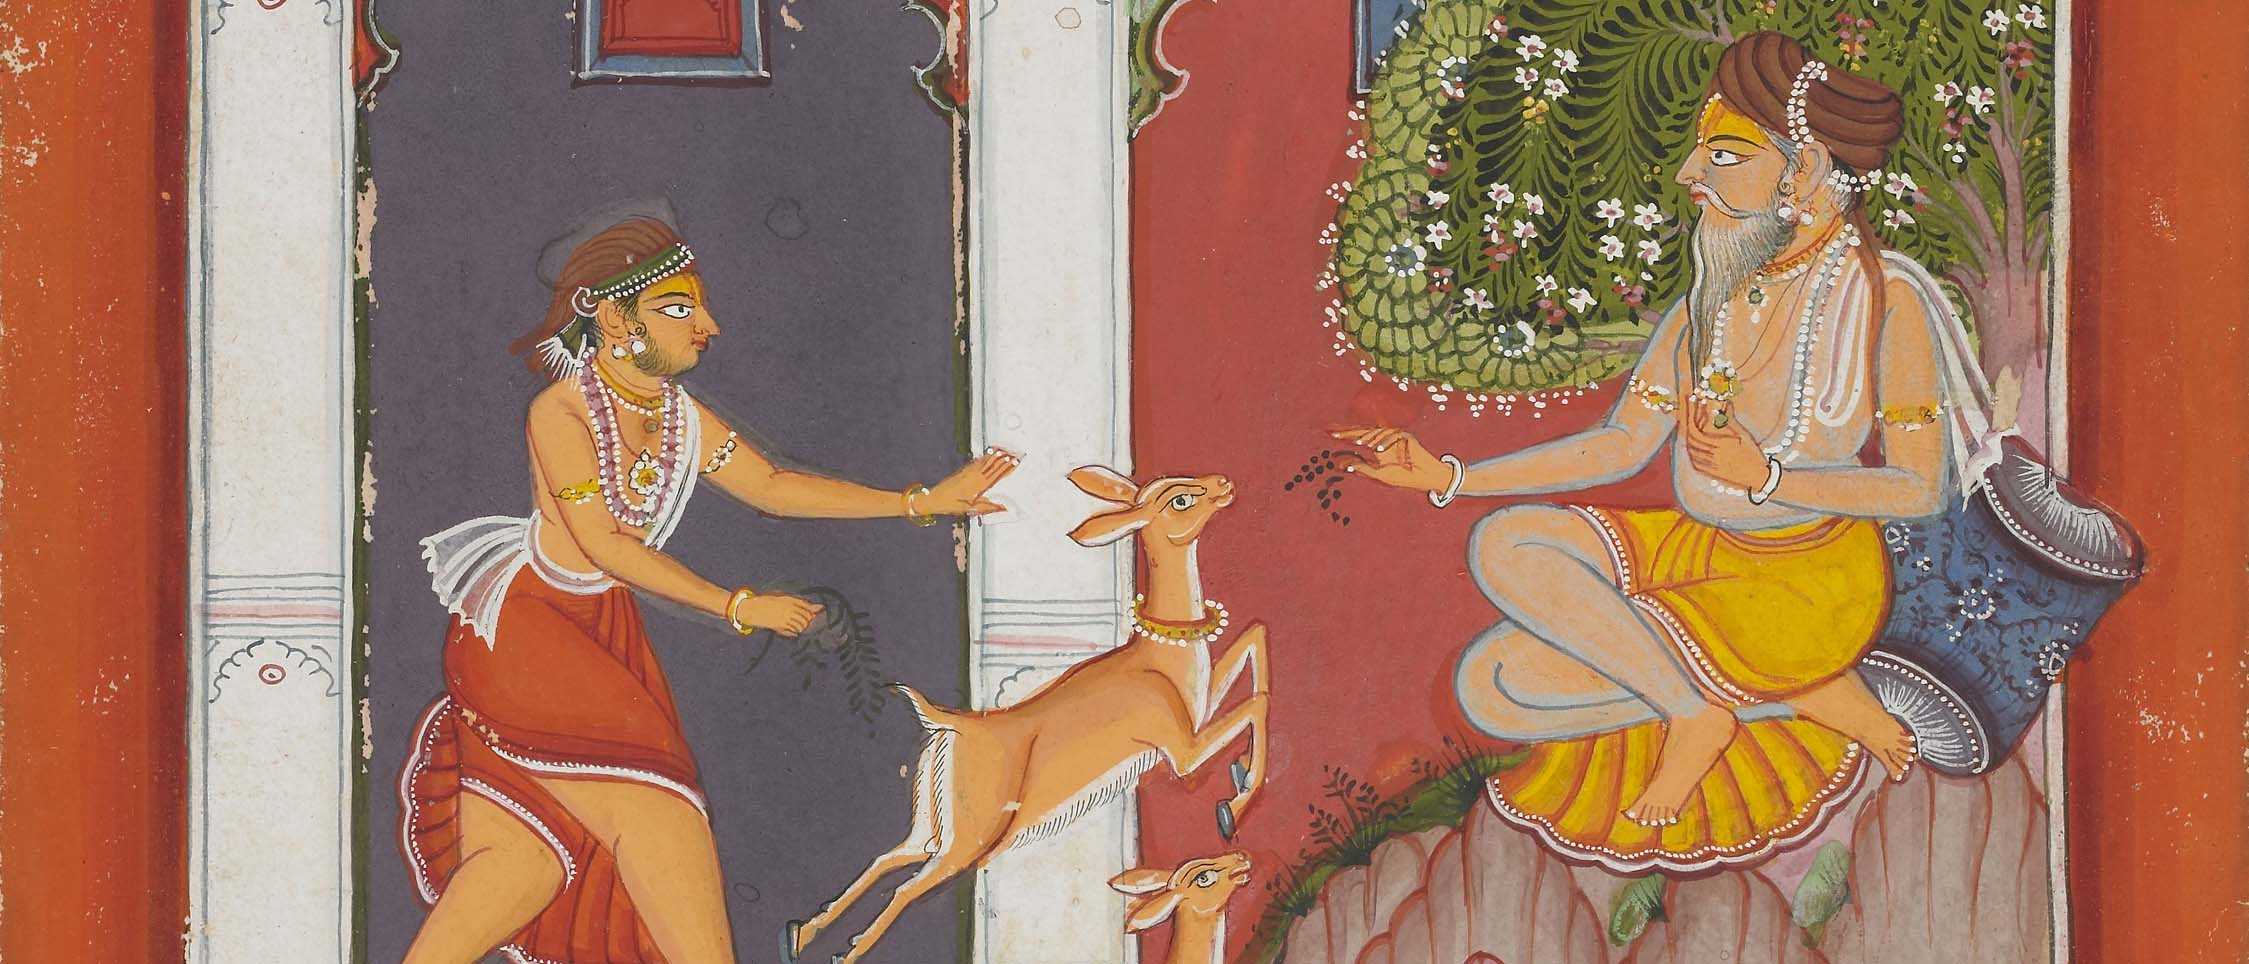 Detail, Sarang Raga from the Sirohi Ragamala Painting, F1992.18